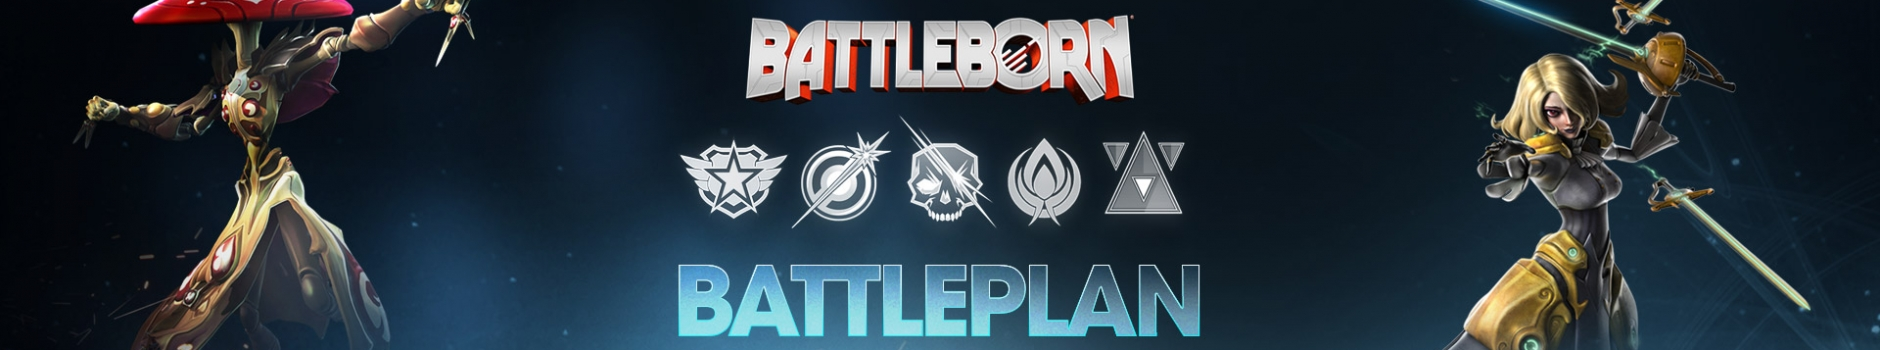 Battleplan 55: PAX West, Humble Bundles, and Queue Changes!